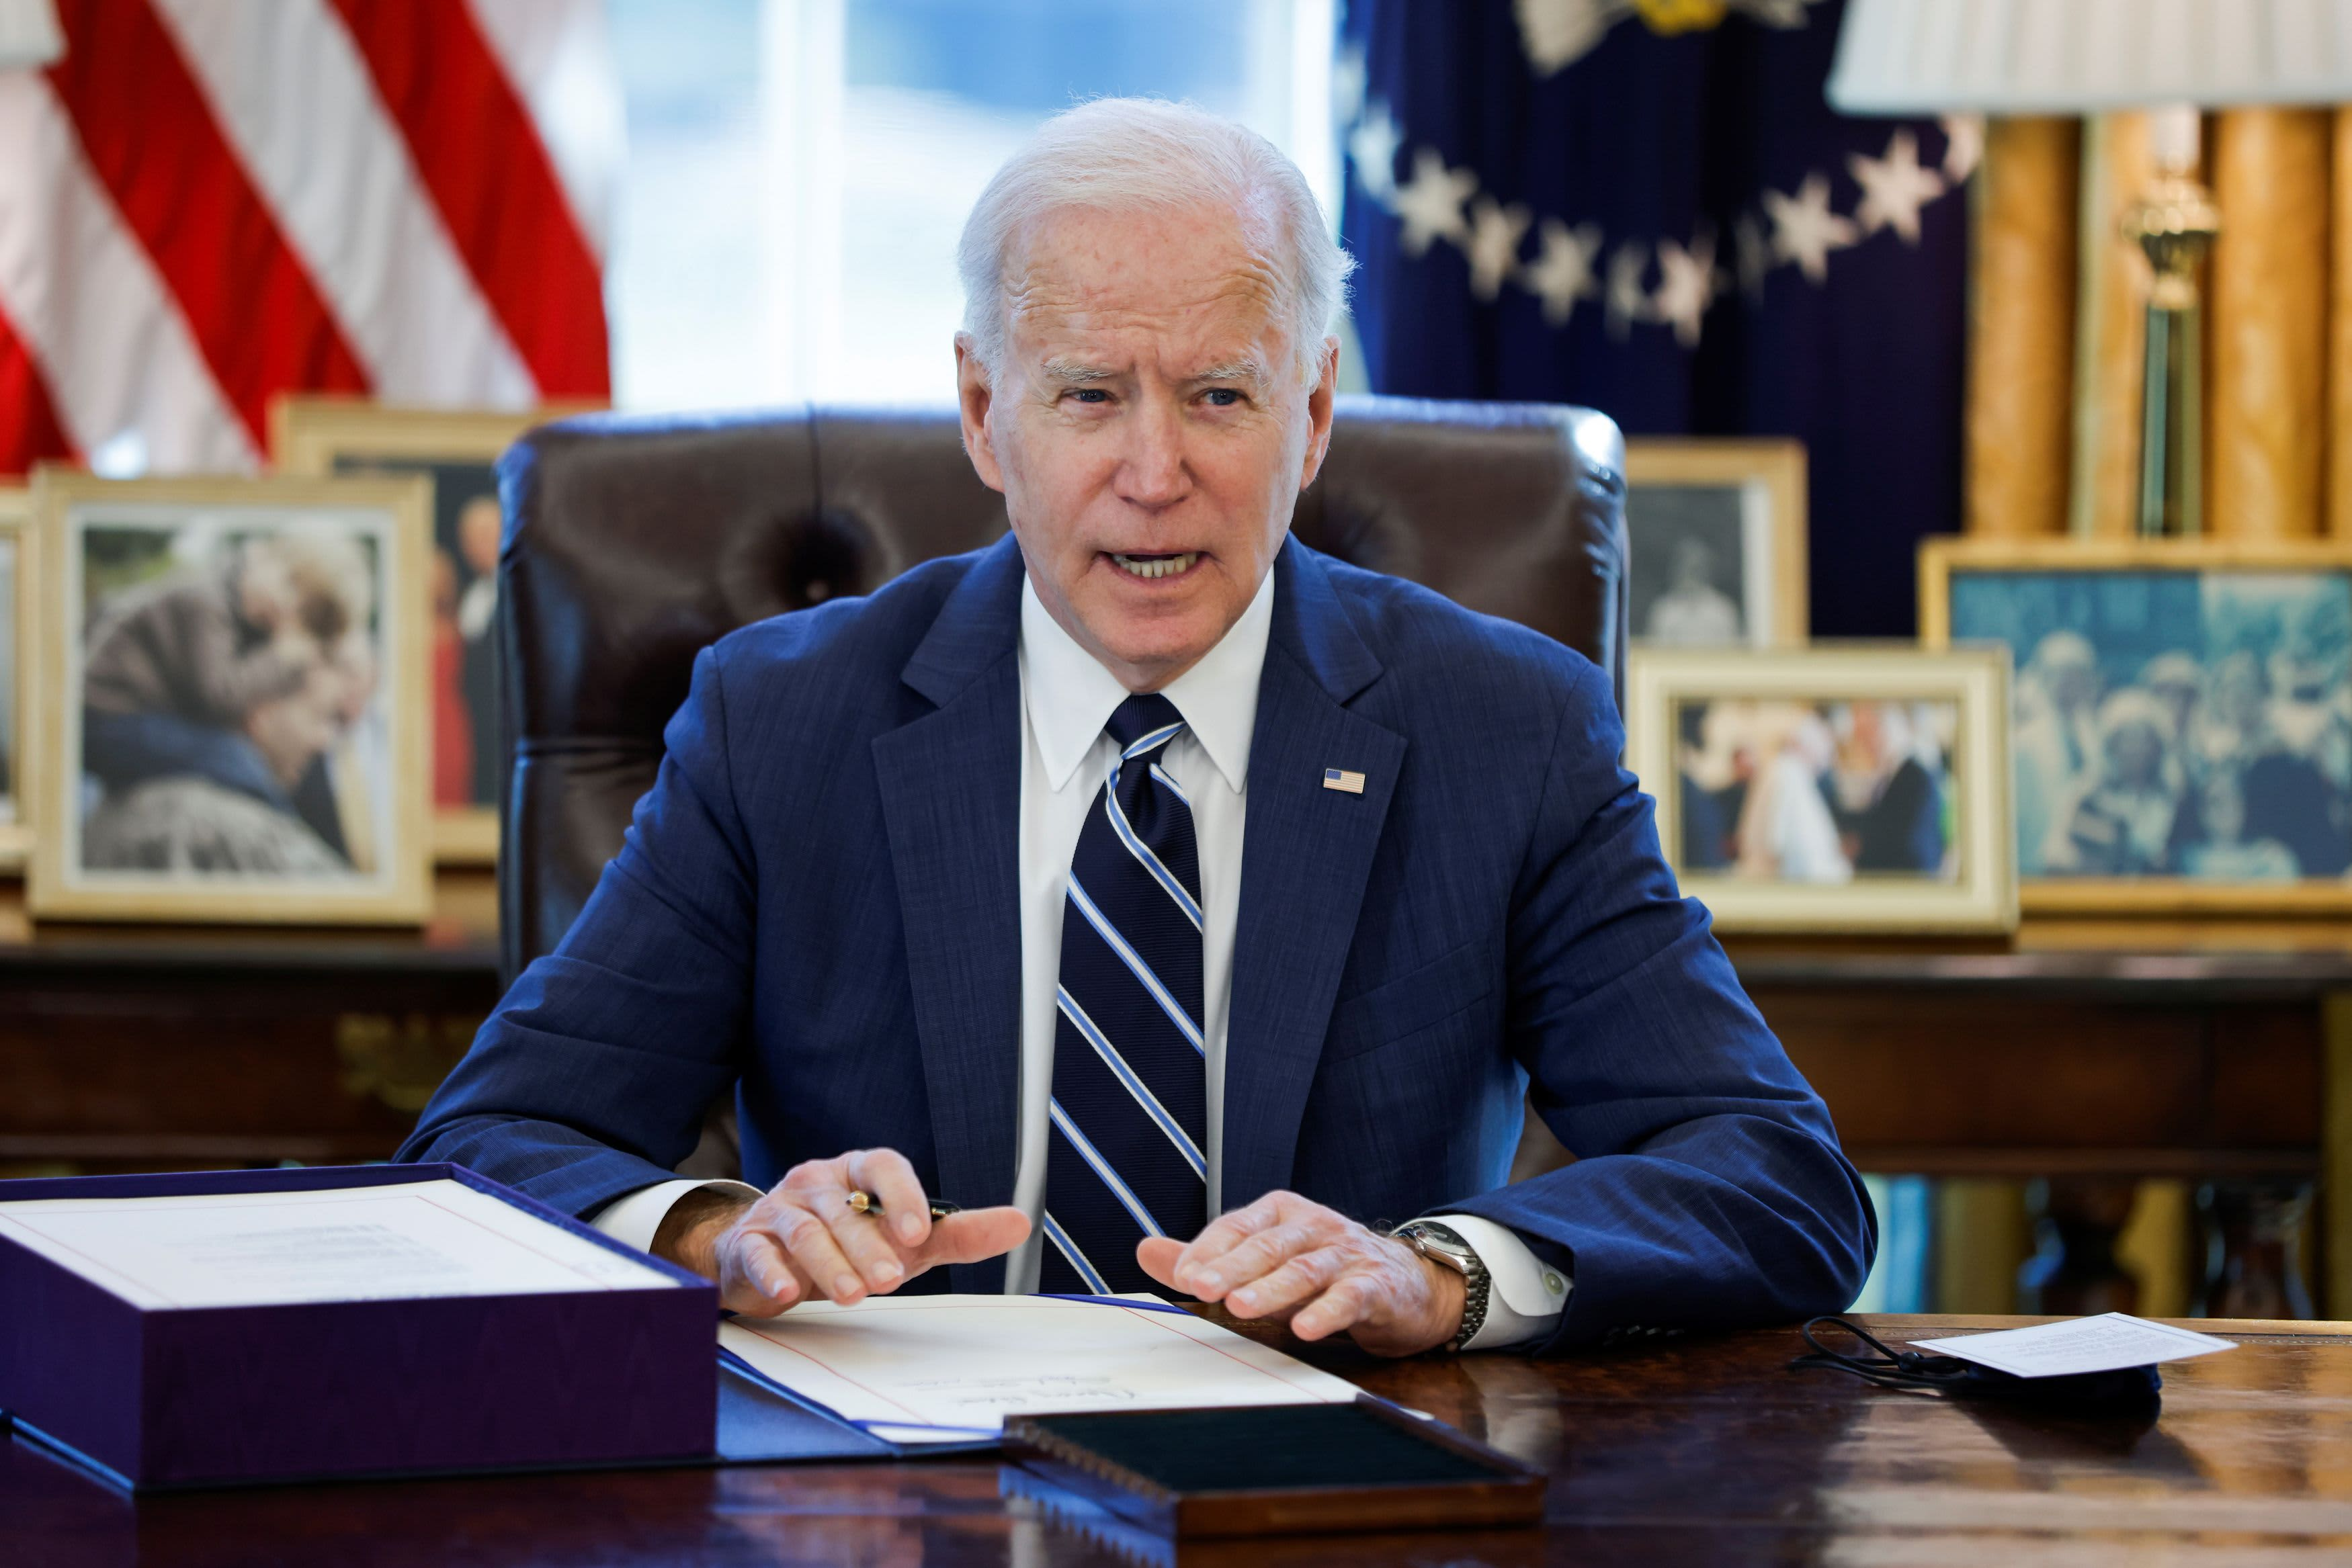 Enjoy live: Biden delivers his very first primetime address on next actions in battle against Covid thumbnail